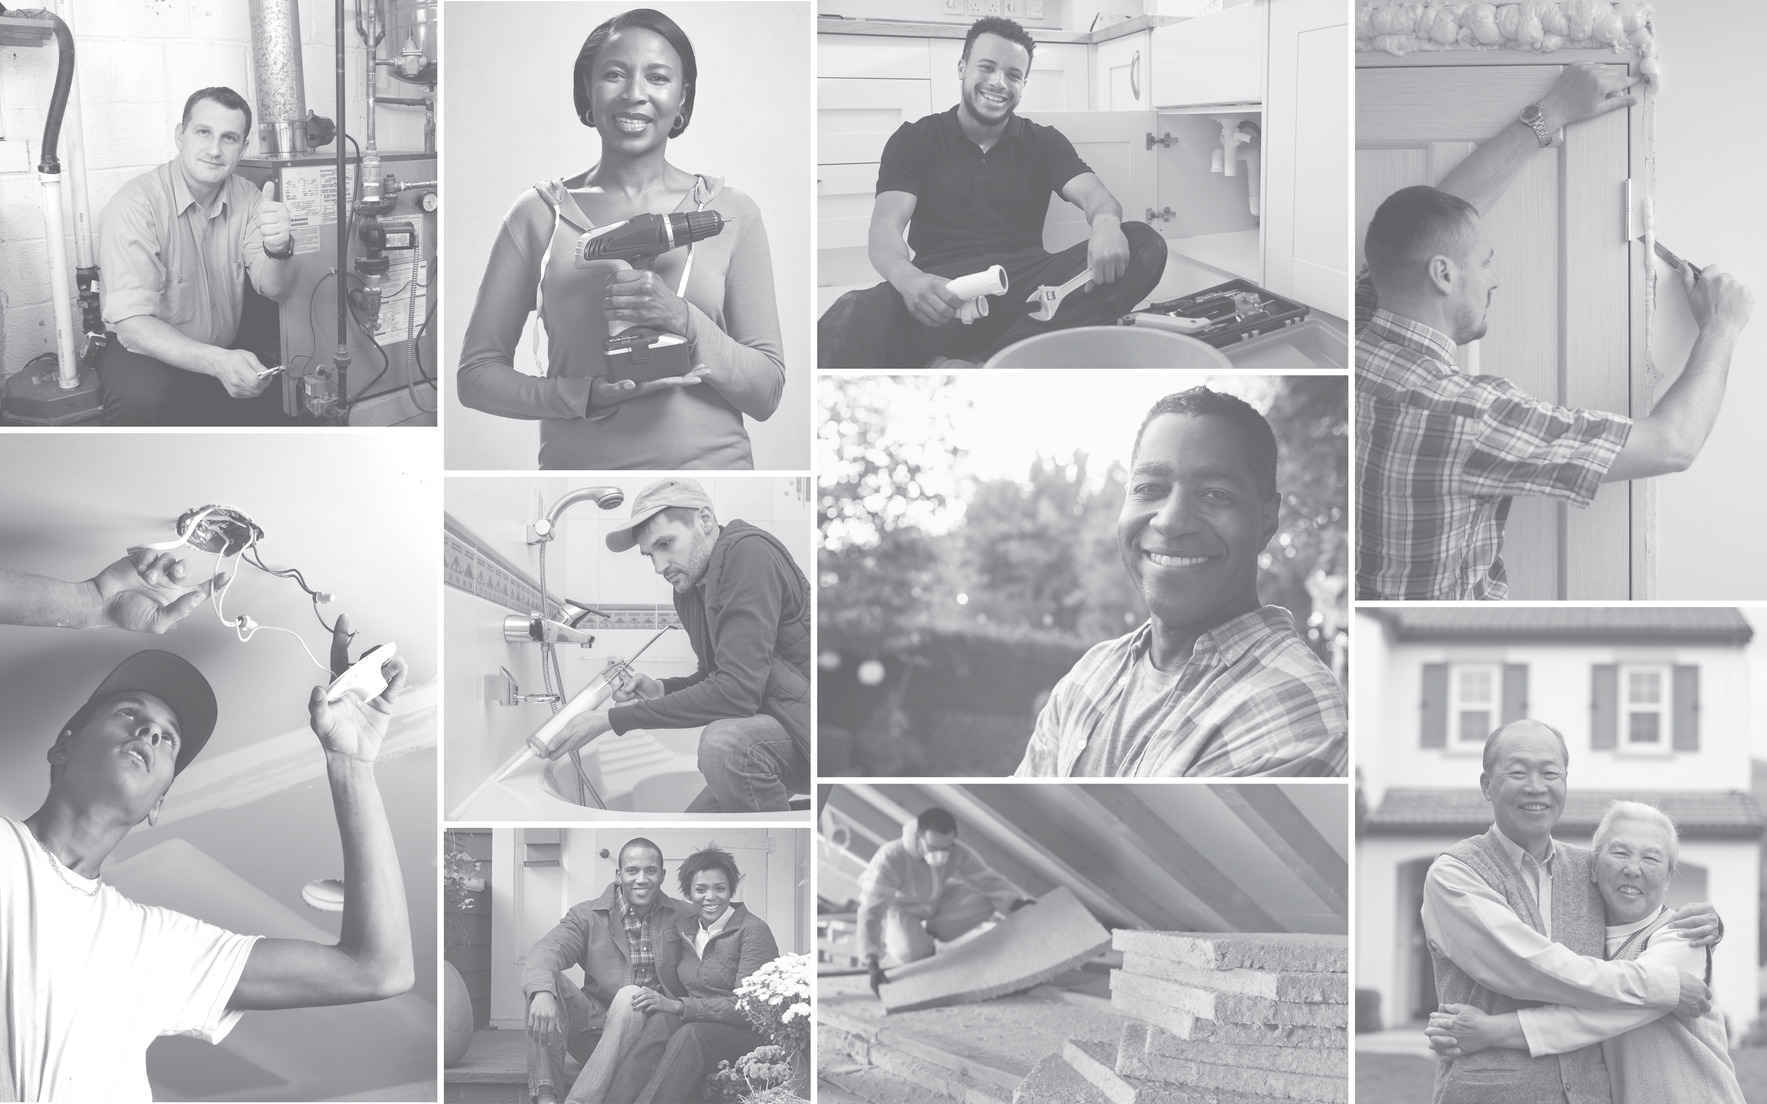 You can help provide safe housing to a family in need. image